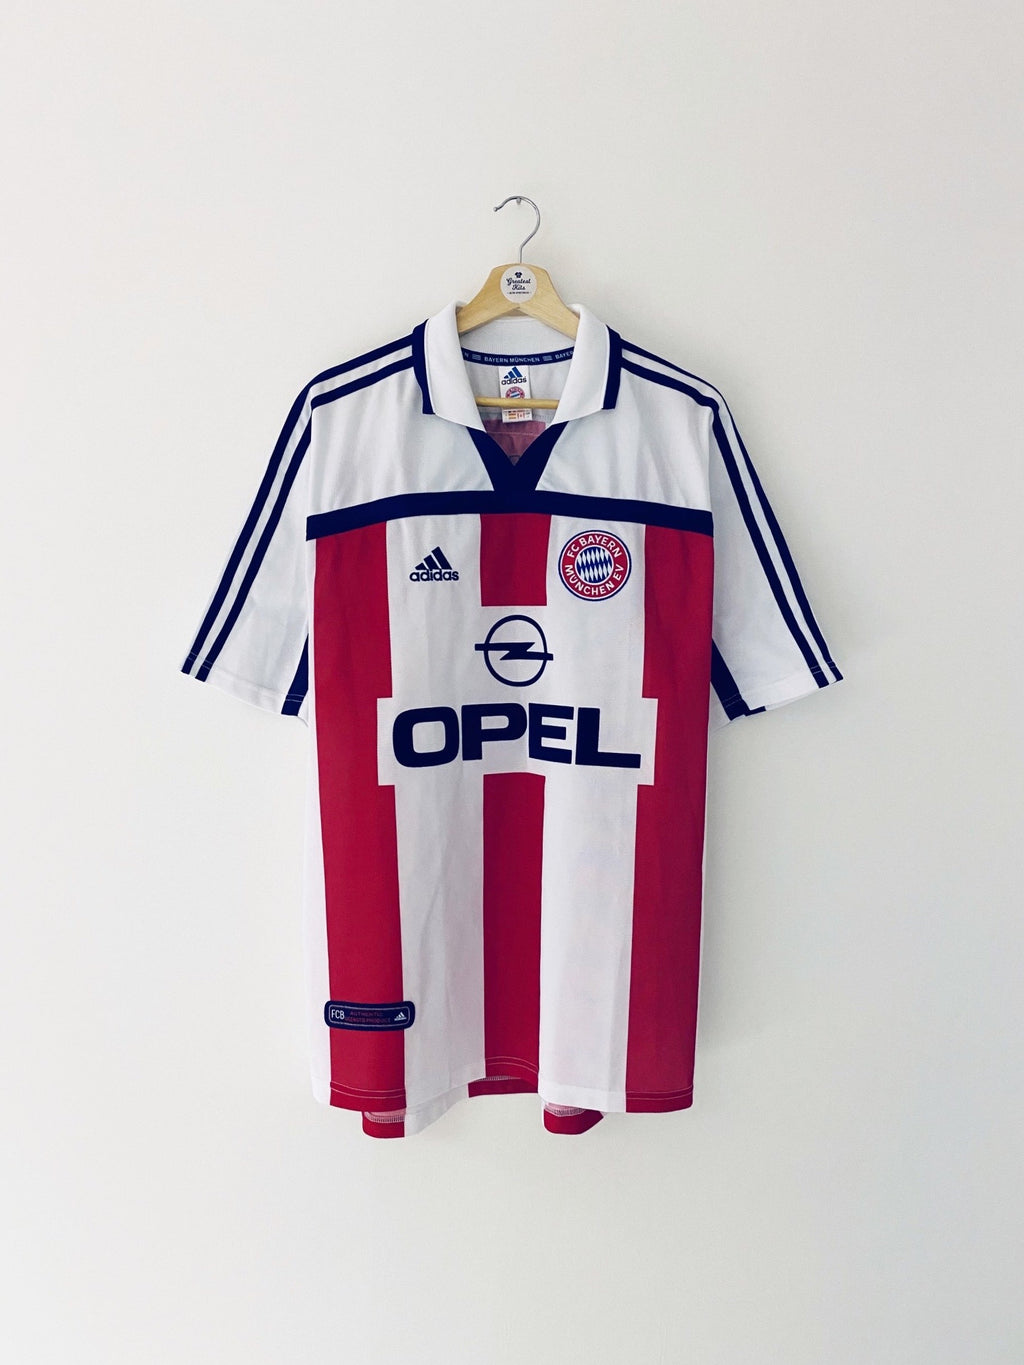 2000/01 Bayern Munich Away Shirt (L) 9.5/10